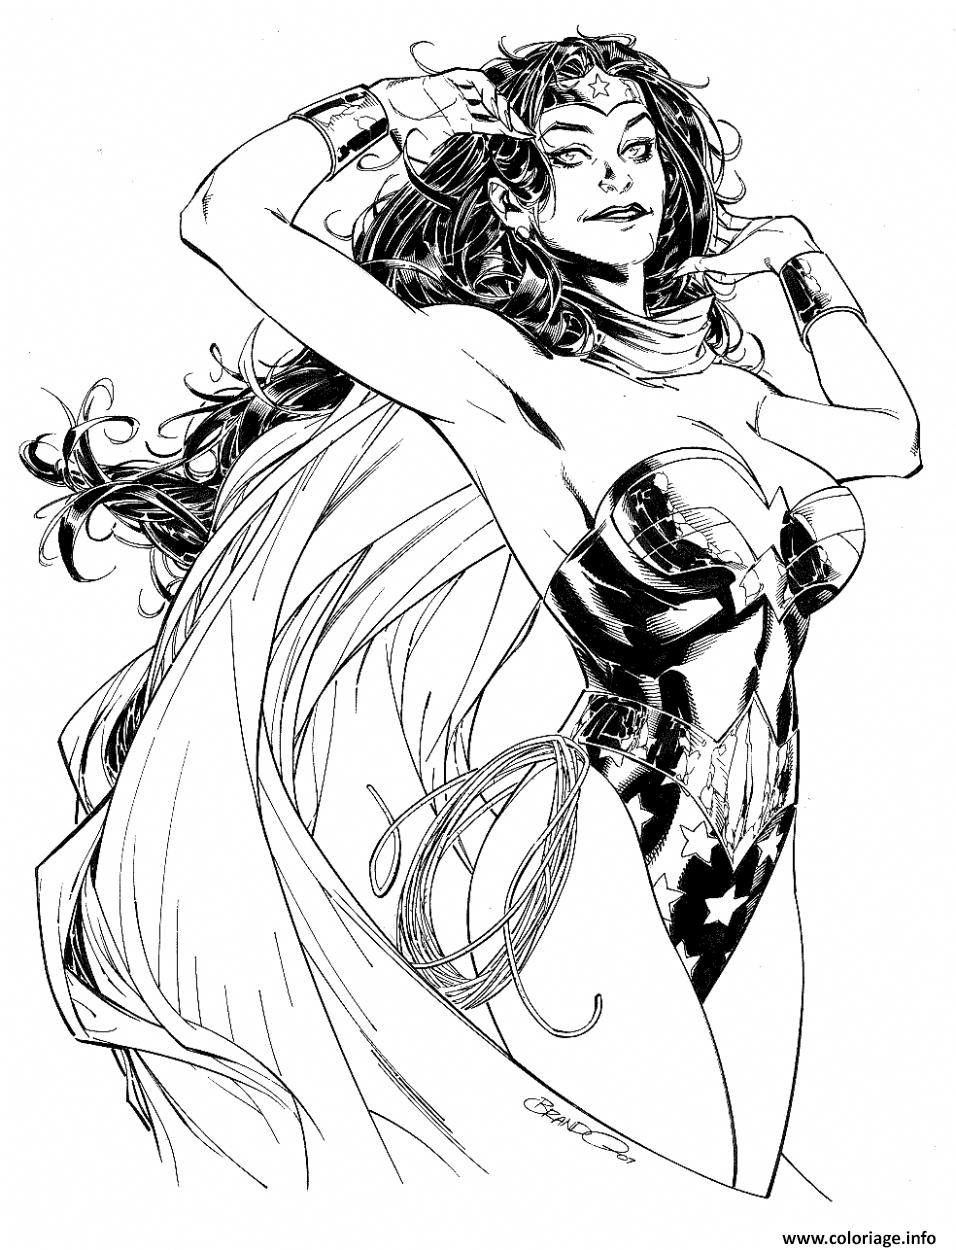 Dessin Wonder Woman by Brandon Peterson Coloriage Gratuit à Imprimer